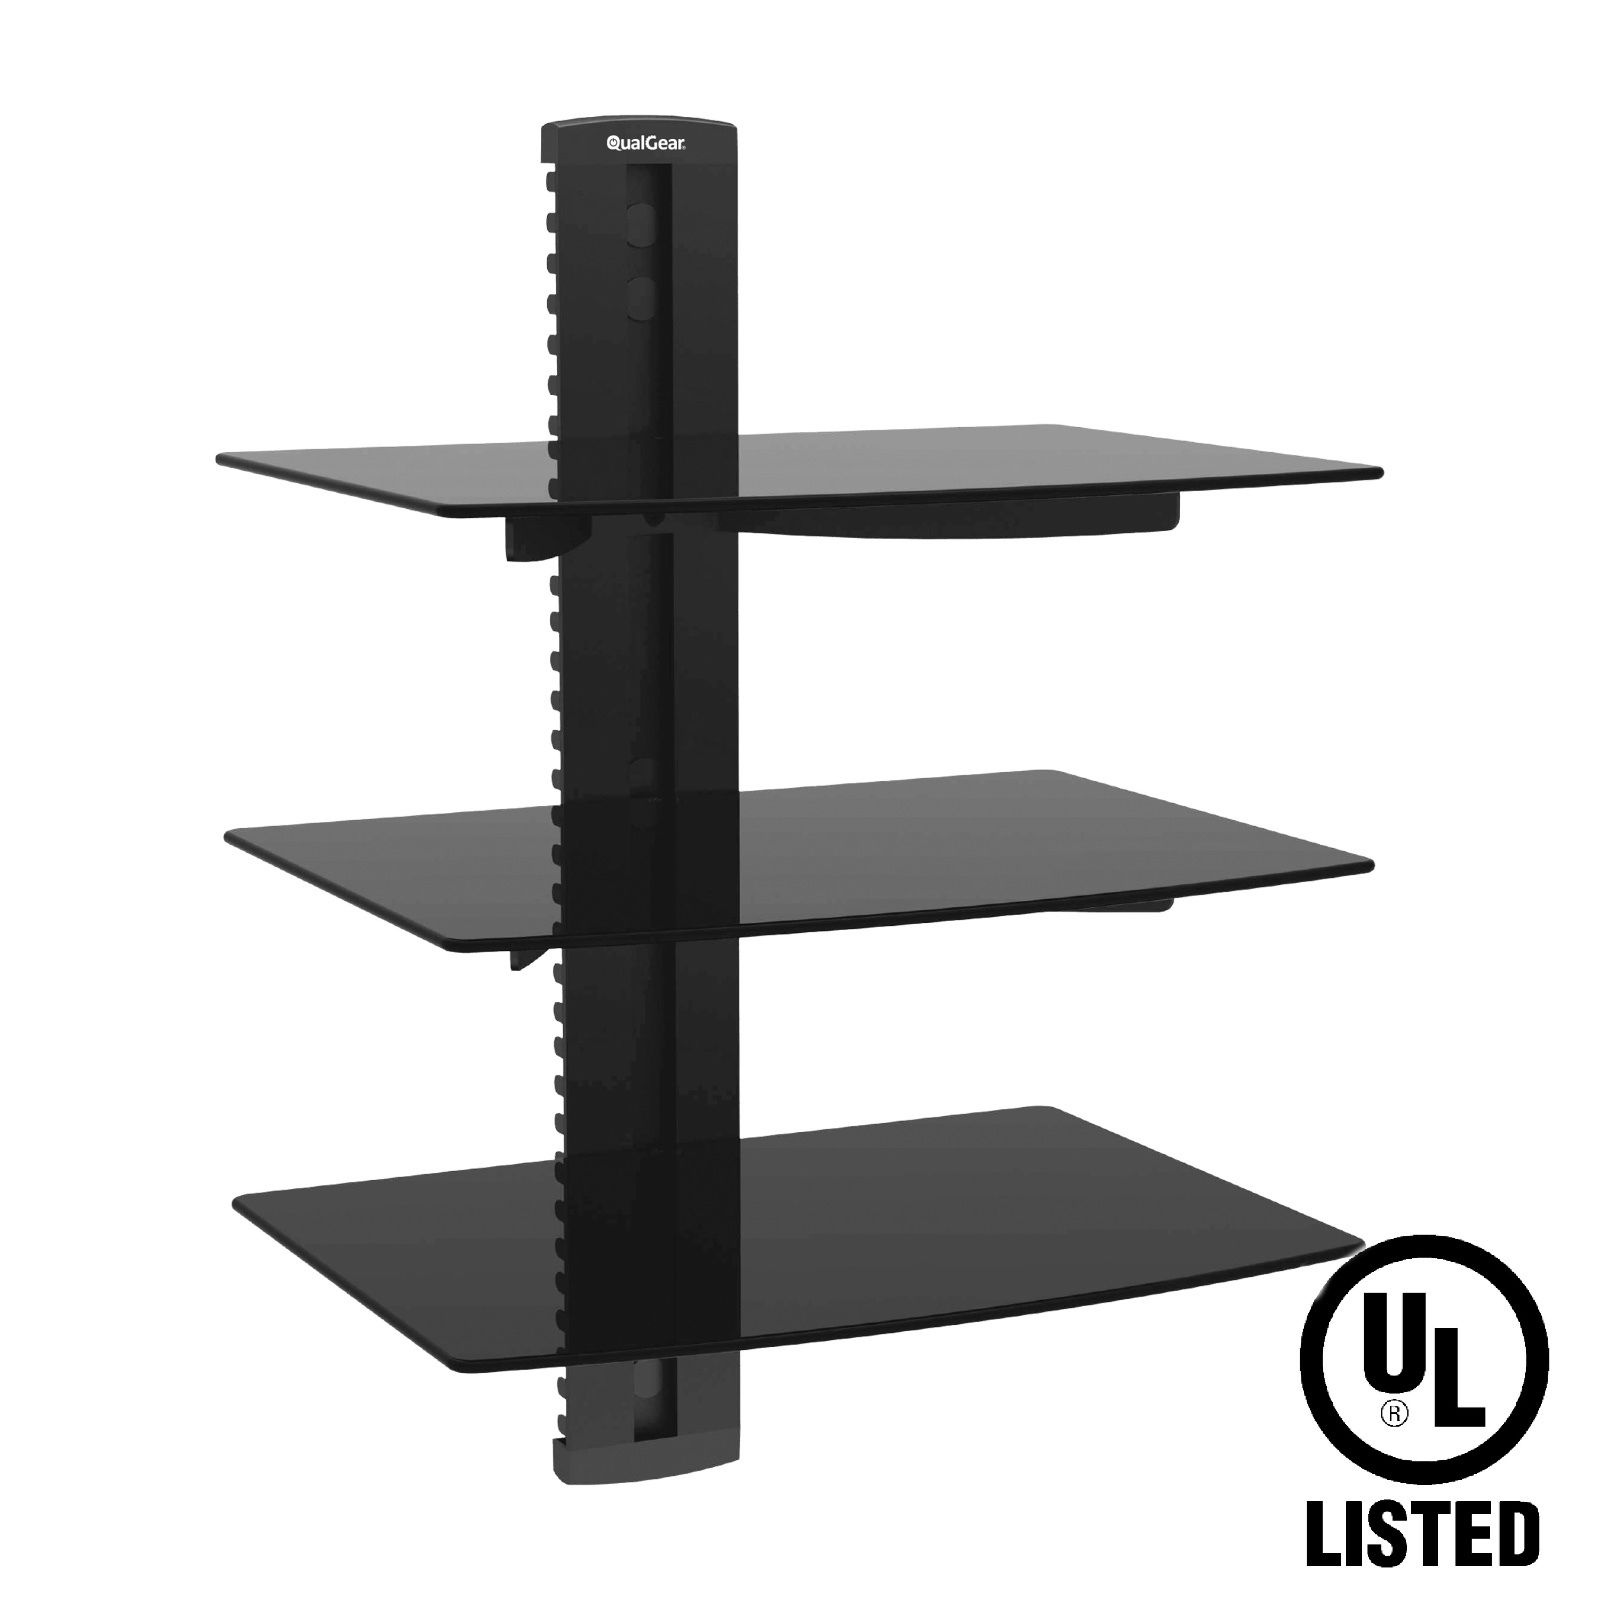 QualGear® Universal Triple Shelf Wall Mount for A/V Components upto 8kgs/17.6lbs(x3), Black (QG-DB-003-BLK)